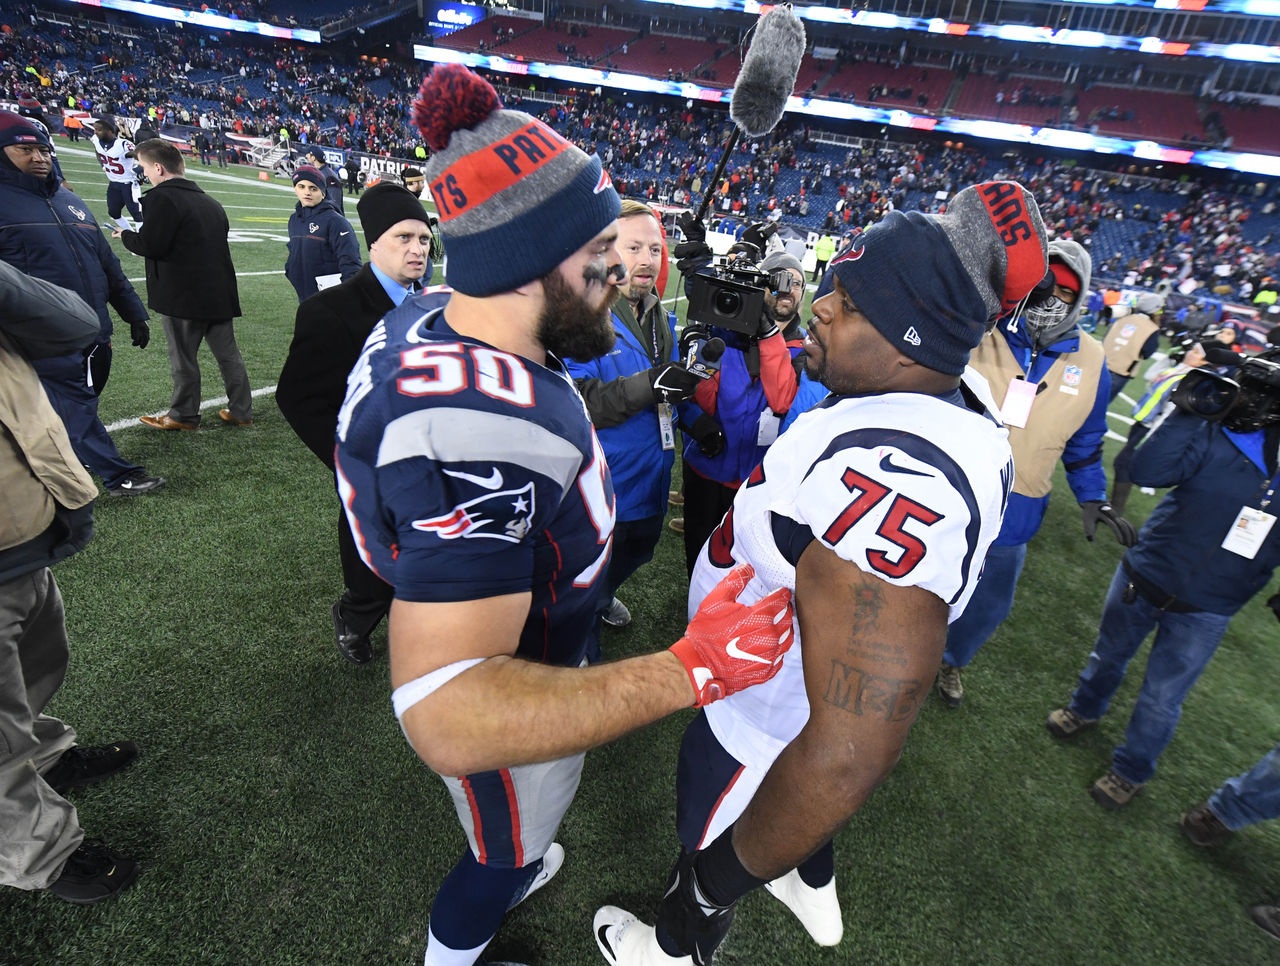 Cropped_2017-01-15t044203z_946902351_nocid_rtrmadp_3_nfl-afc-divisional-houston-texans-at-new-england-patriots